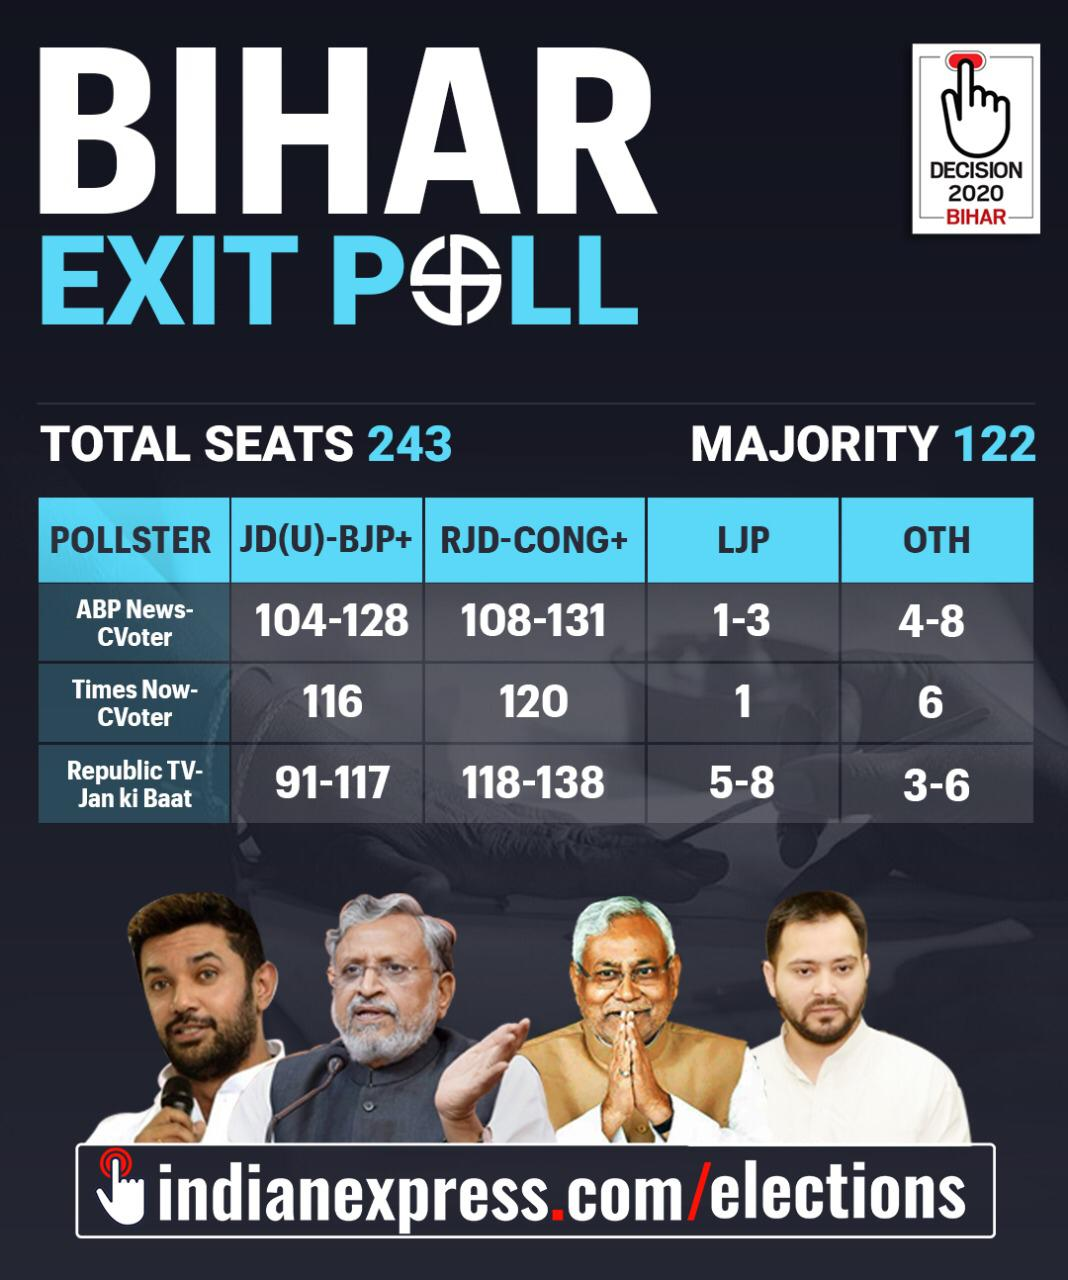 Bihar Election Exit Poll Results 2020 Live Updates: Bihar Vidhan Sabha  Chunav/Election Exit Poll Result 2020 Latest News and Update